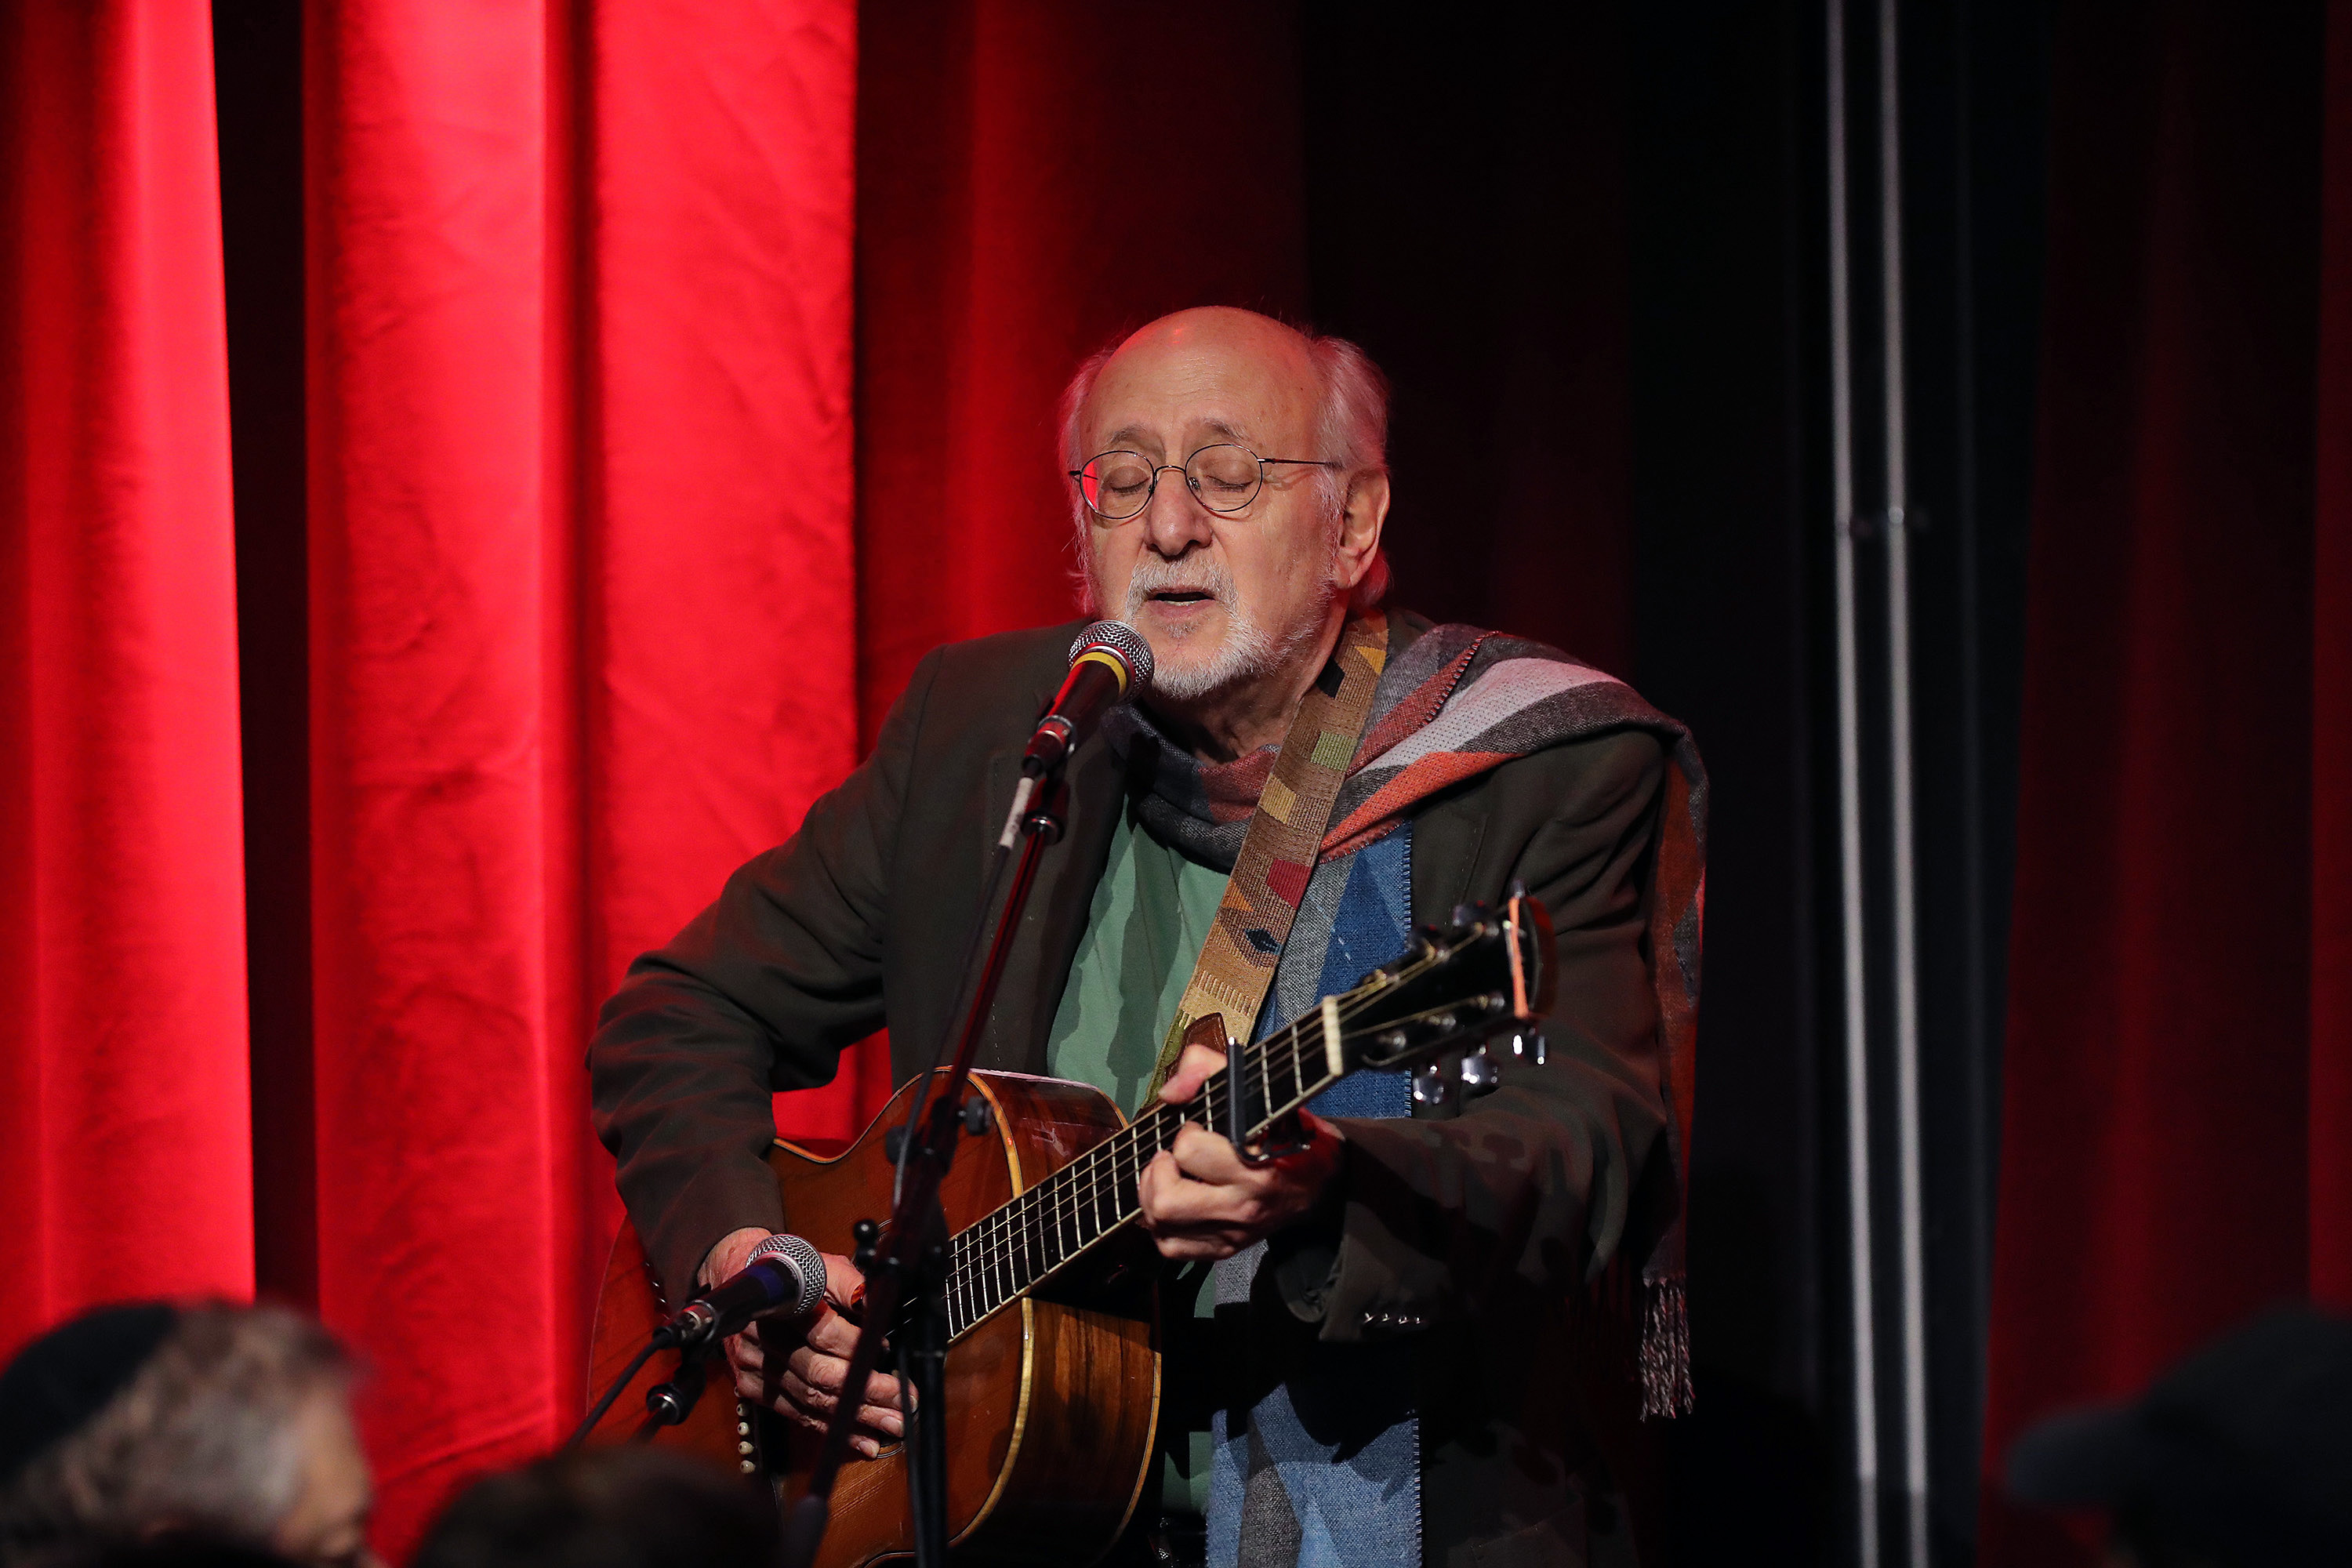 <p>New Lawsuit Accuses Singer Peter Yarrow of Raping Underage Girl at 1969 thumbnail